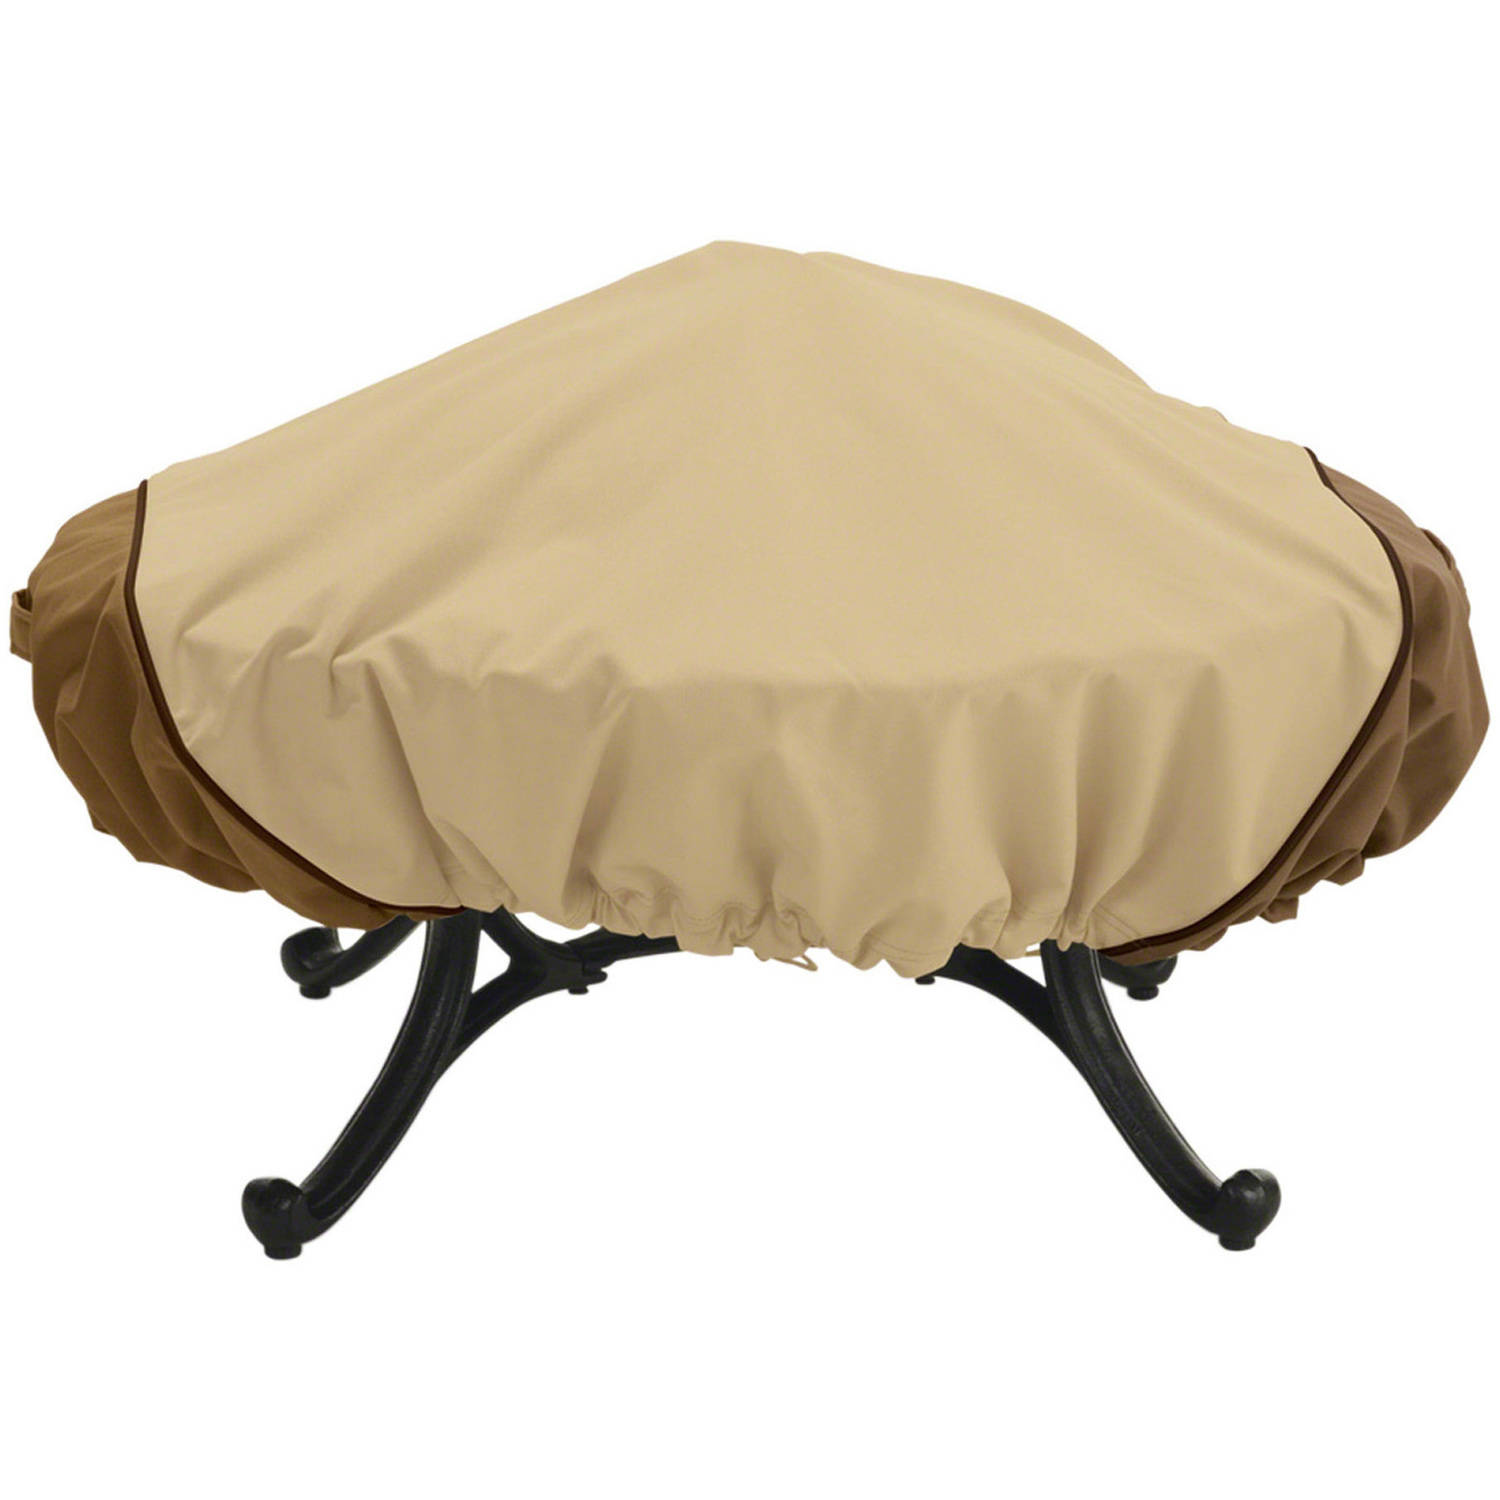 "Classic Accessories Veranda Fire Pit Patio Storage Cover, Round, fits up to 60"" diameter"